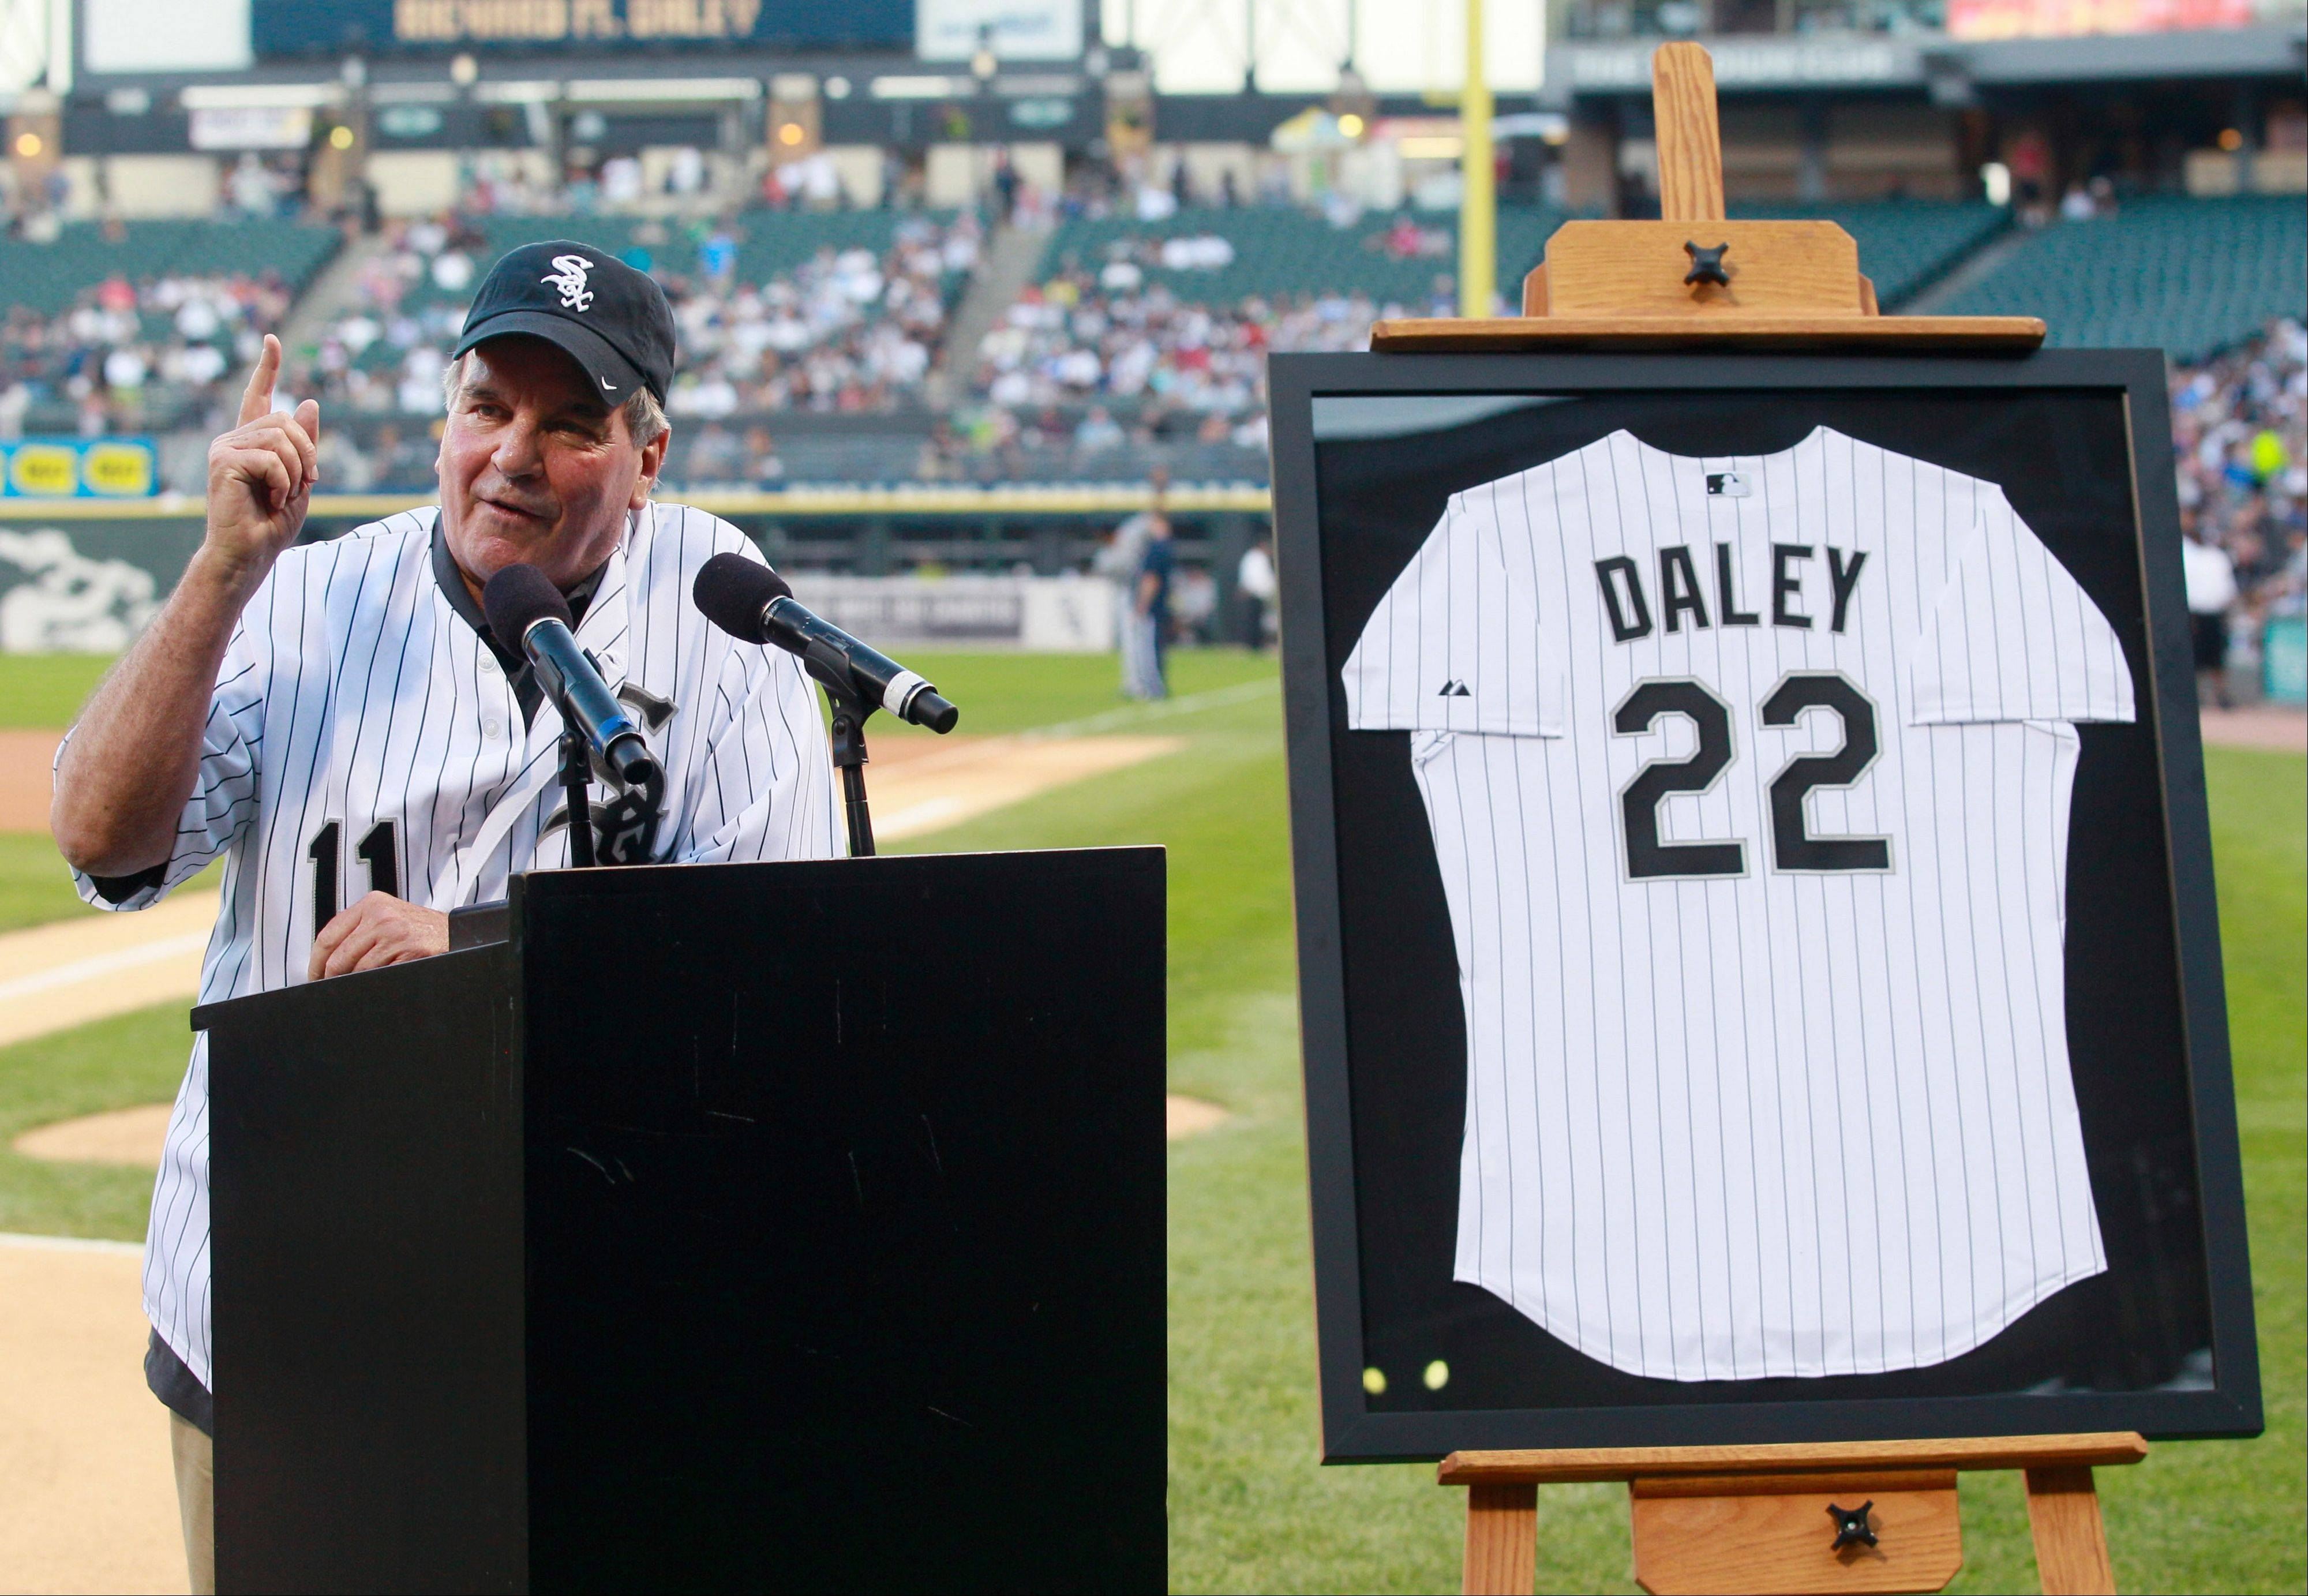 Former Chicago Mayor Richard M. Daley was honored before Wednesday's game.